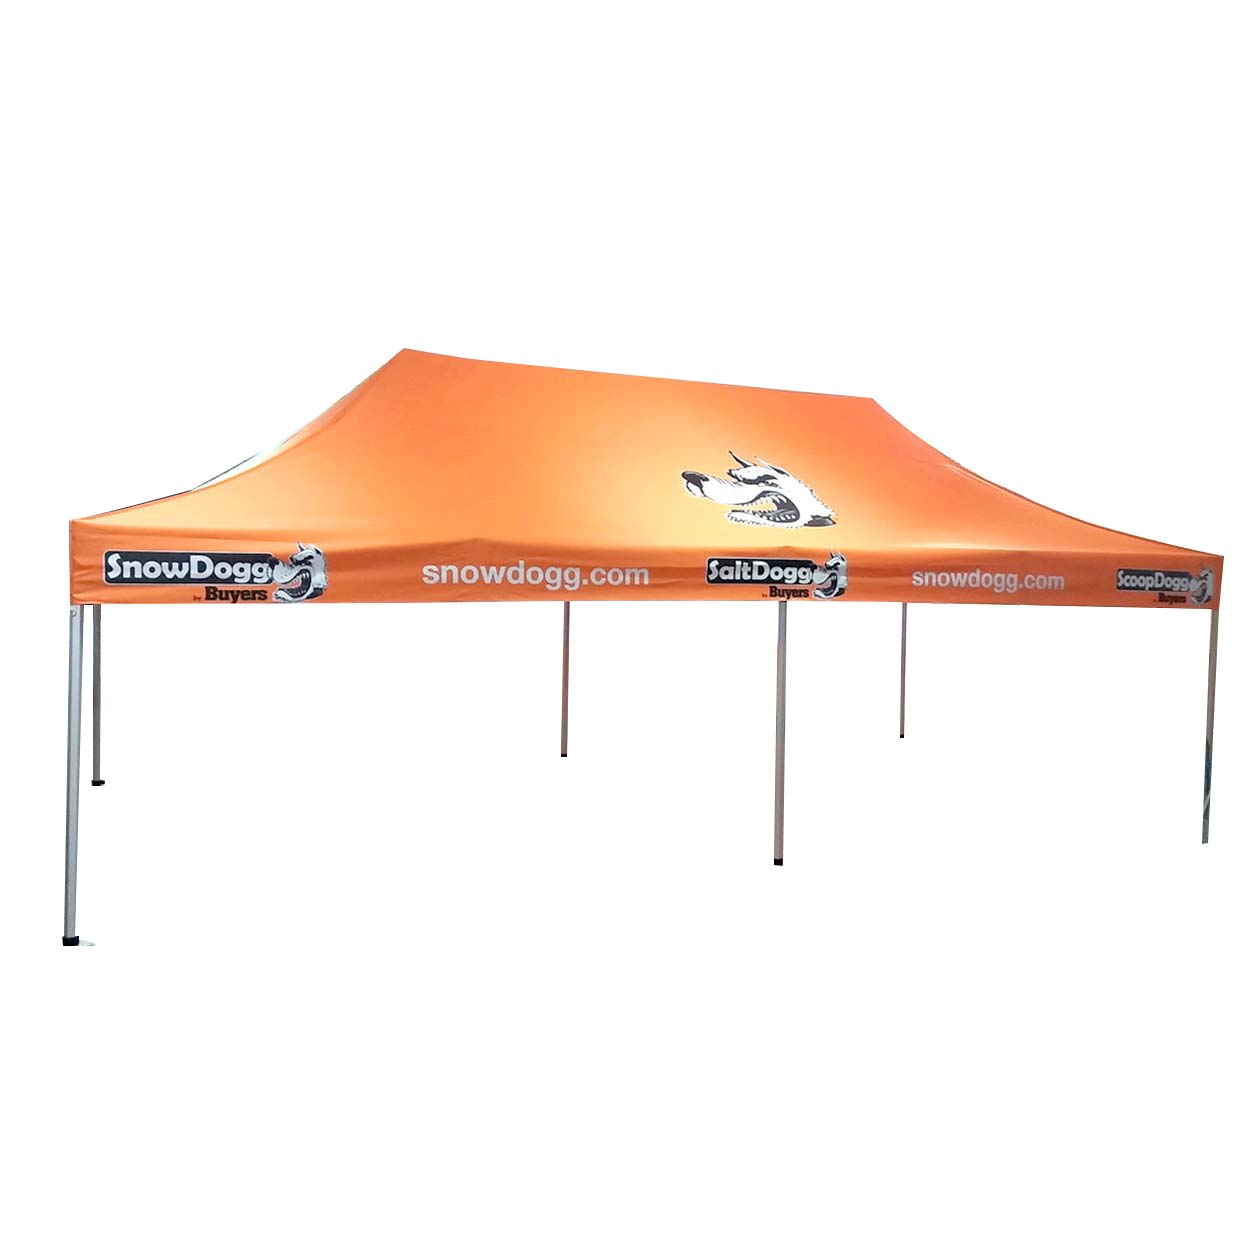 FeaMont newly pop up canopy 10x10 widely-use for outdoor exhibition-1